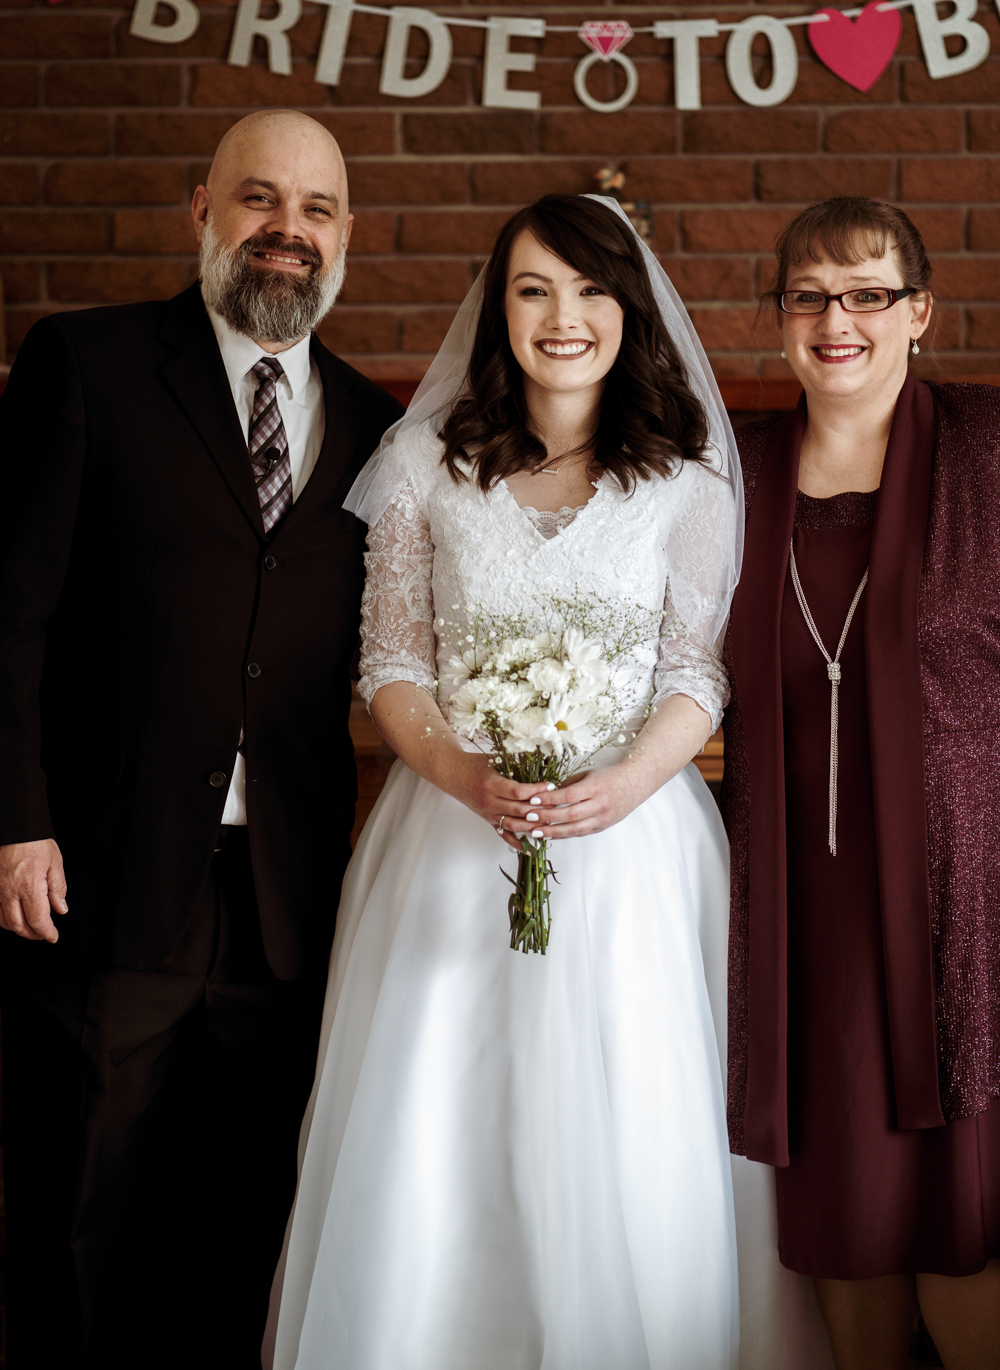 My parents are the best. They also clean up really nice.